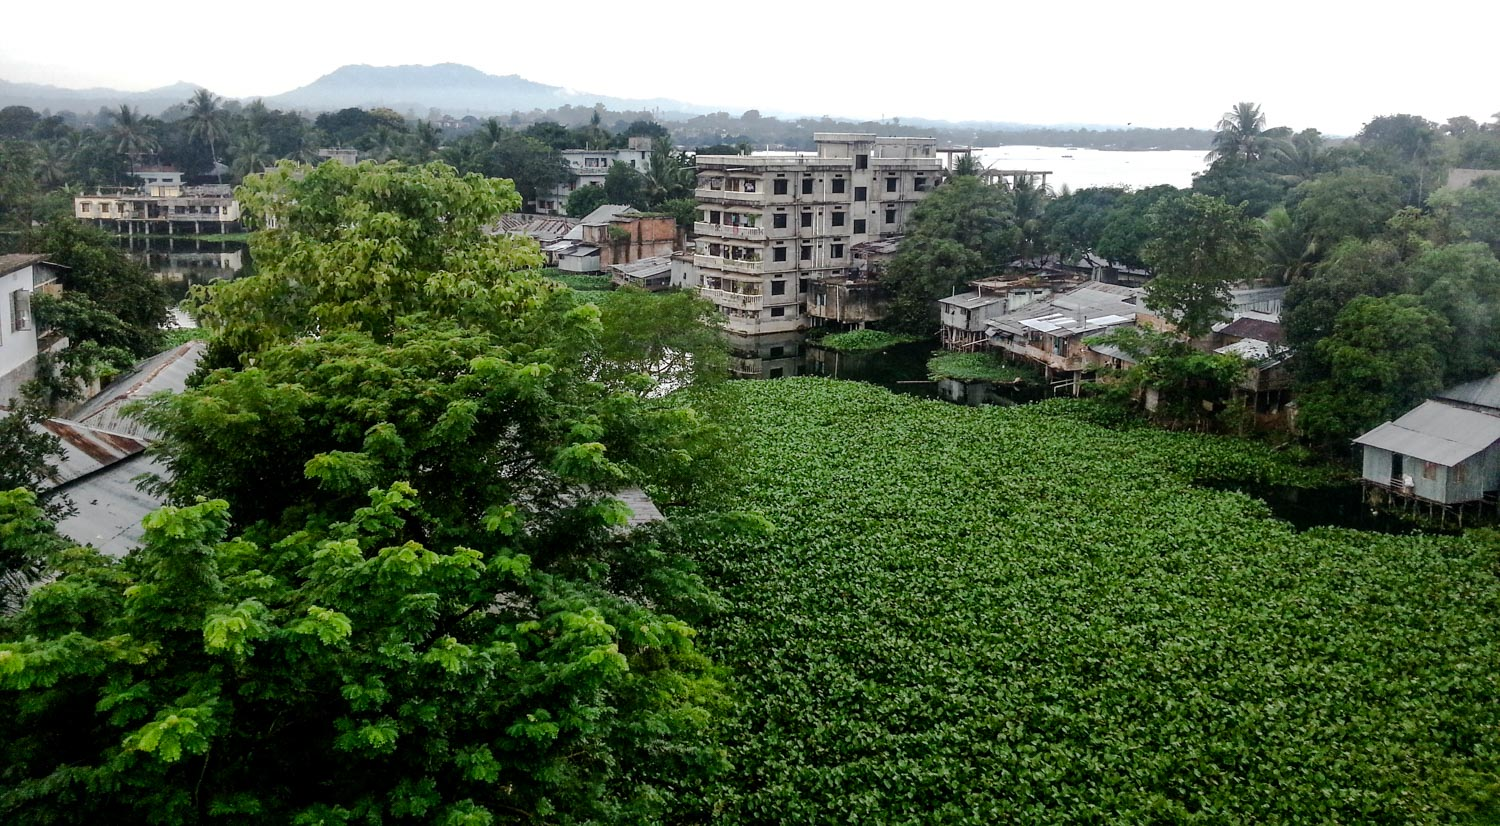 My view from my hotel room in Rangamati.